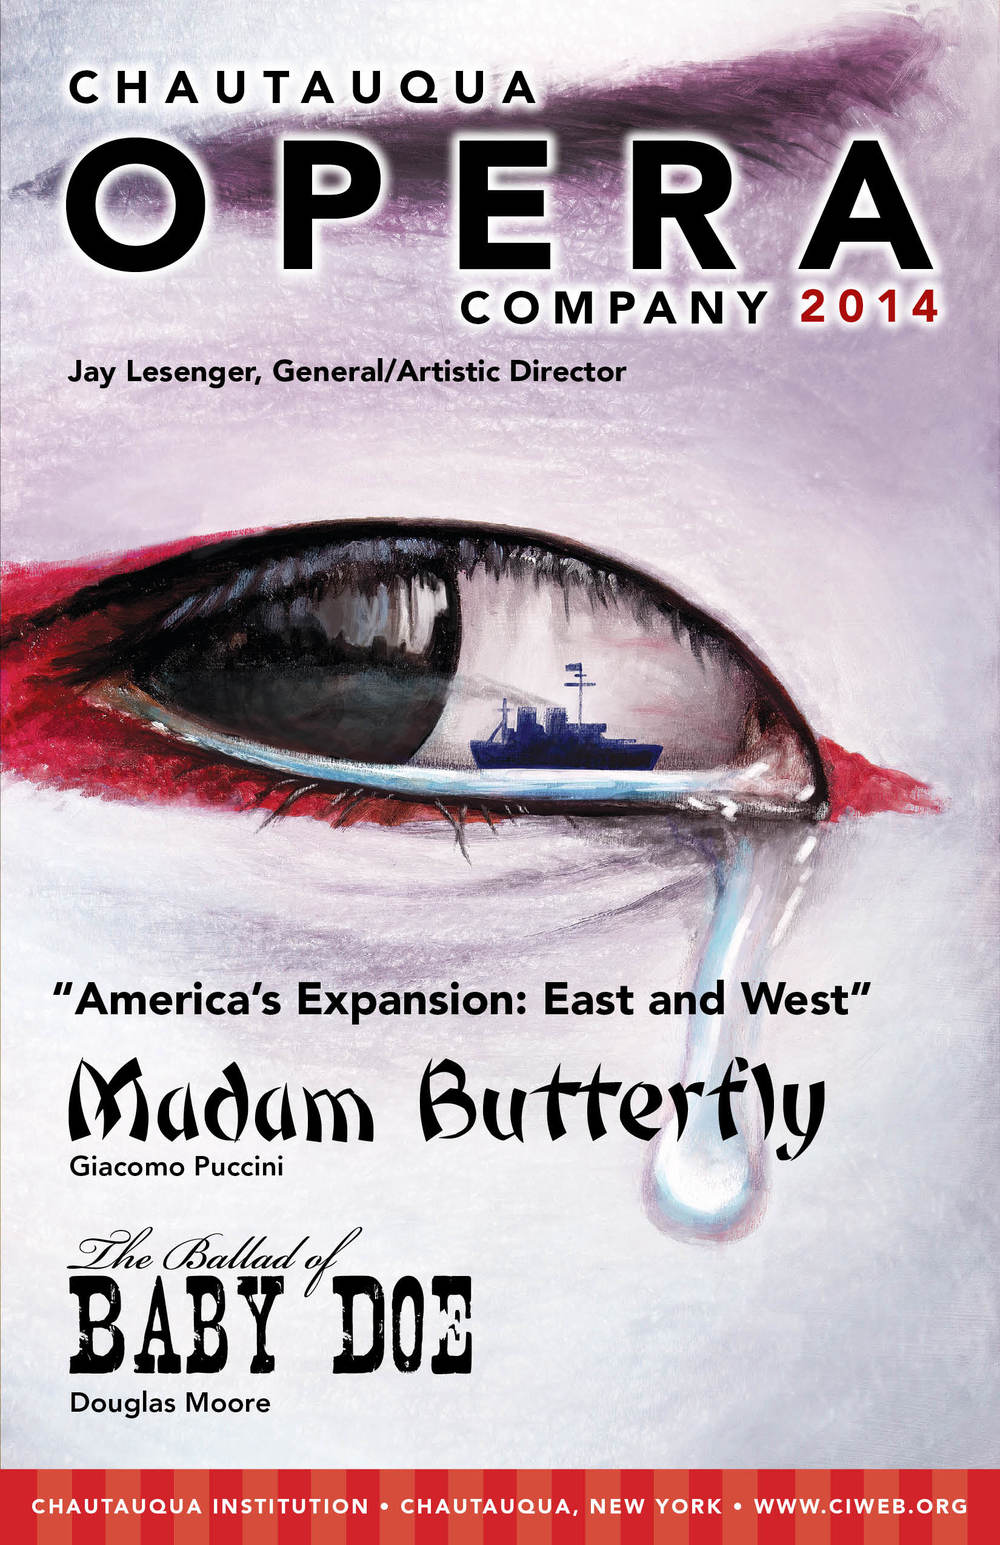 Madam Butterfly  illustration by  Matt Dean